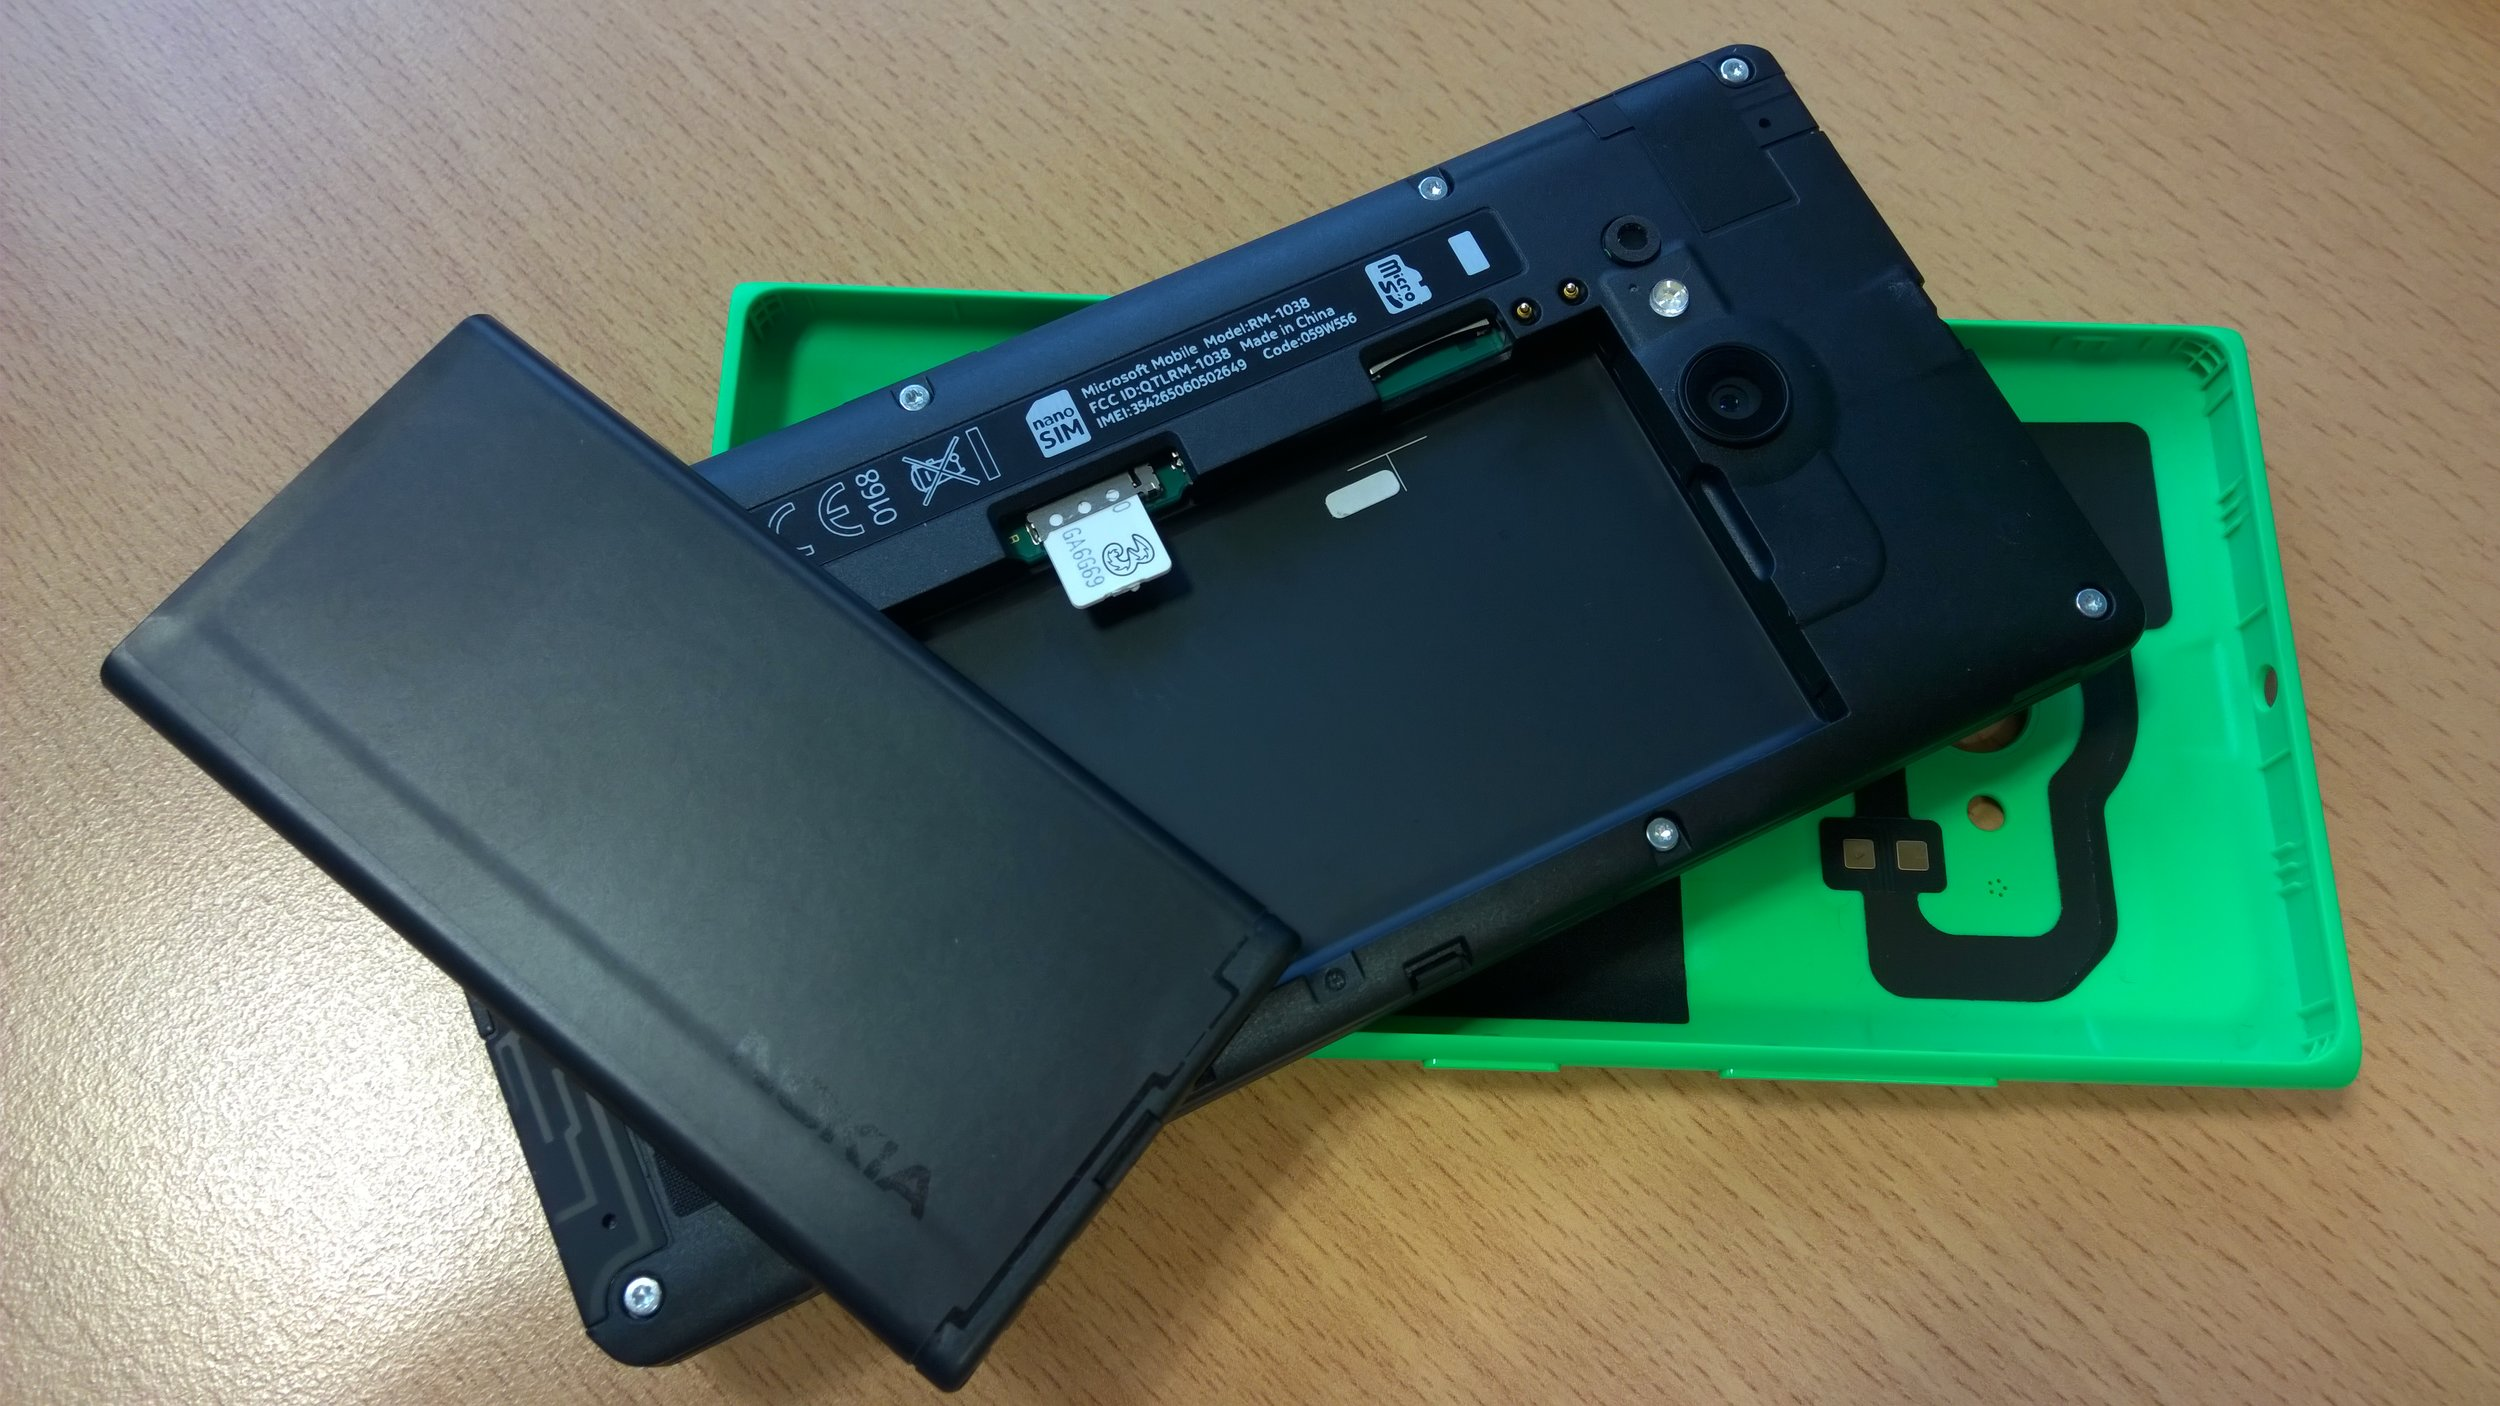 Battery and cover removed, showing SD and SIM slots, and wireless charging inside the case.